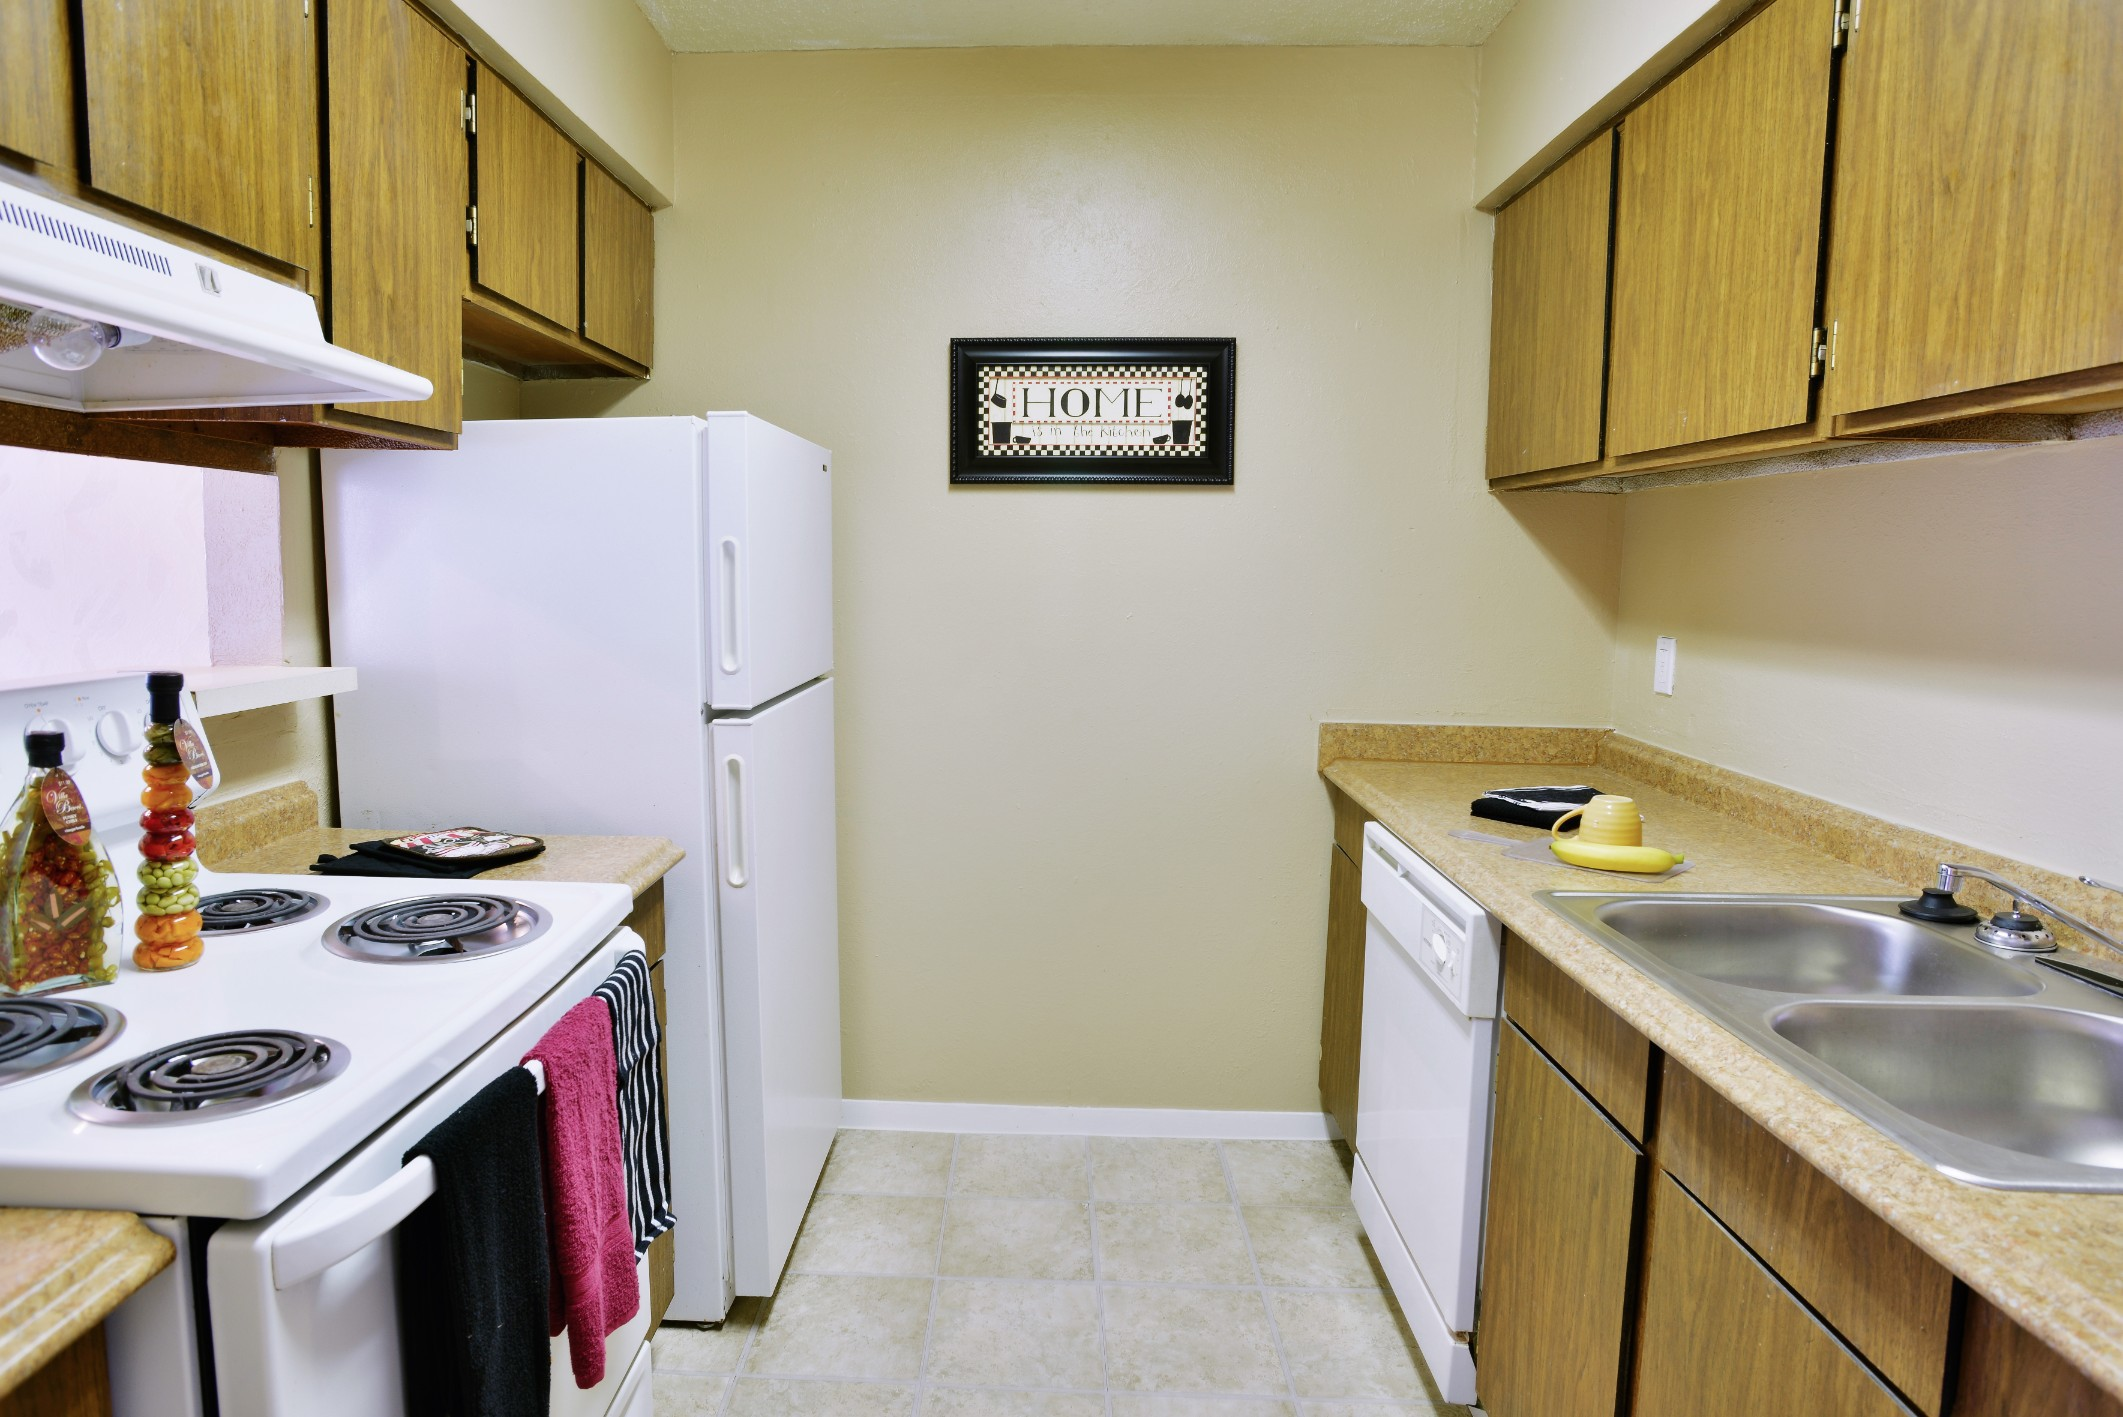 Apartments Near TTUHSC College Pointe for Texas Tech University Health Sciences Center Students in Lubbock, TX